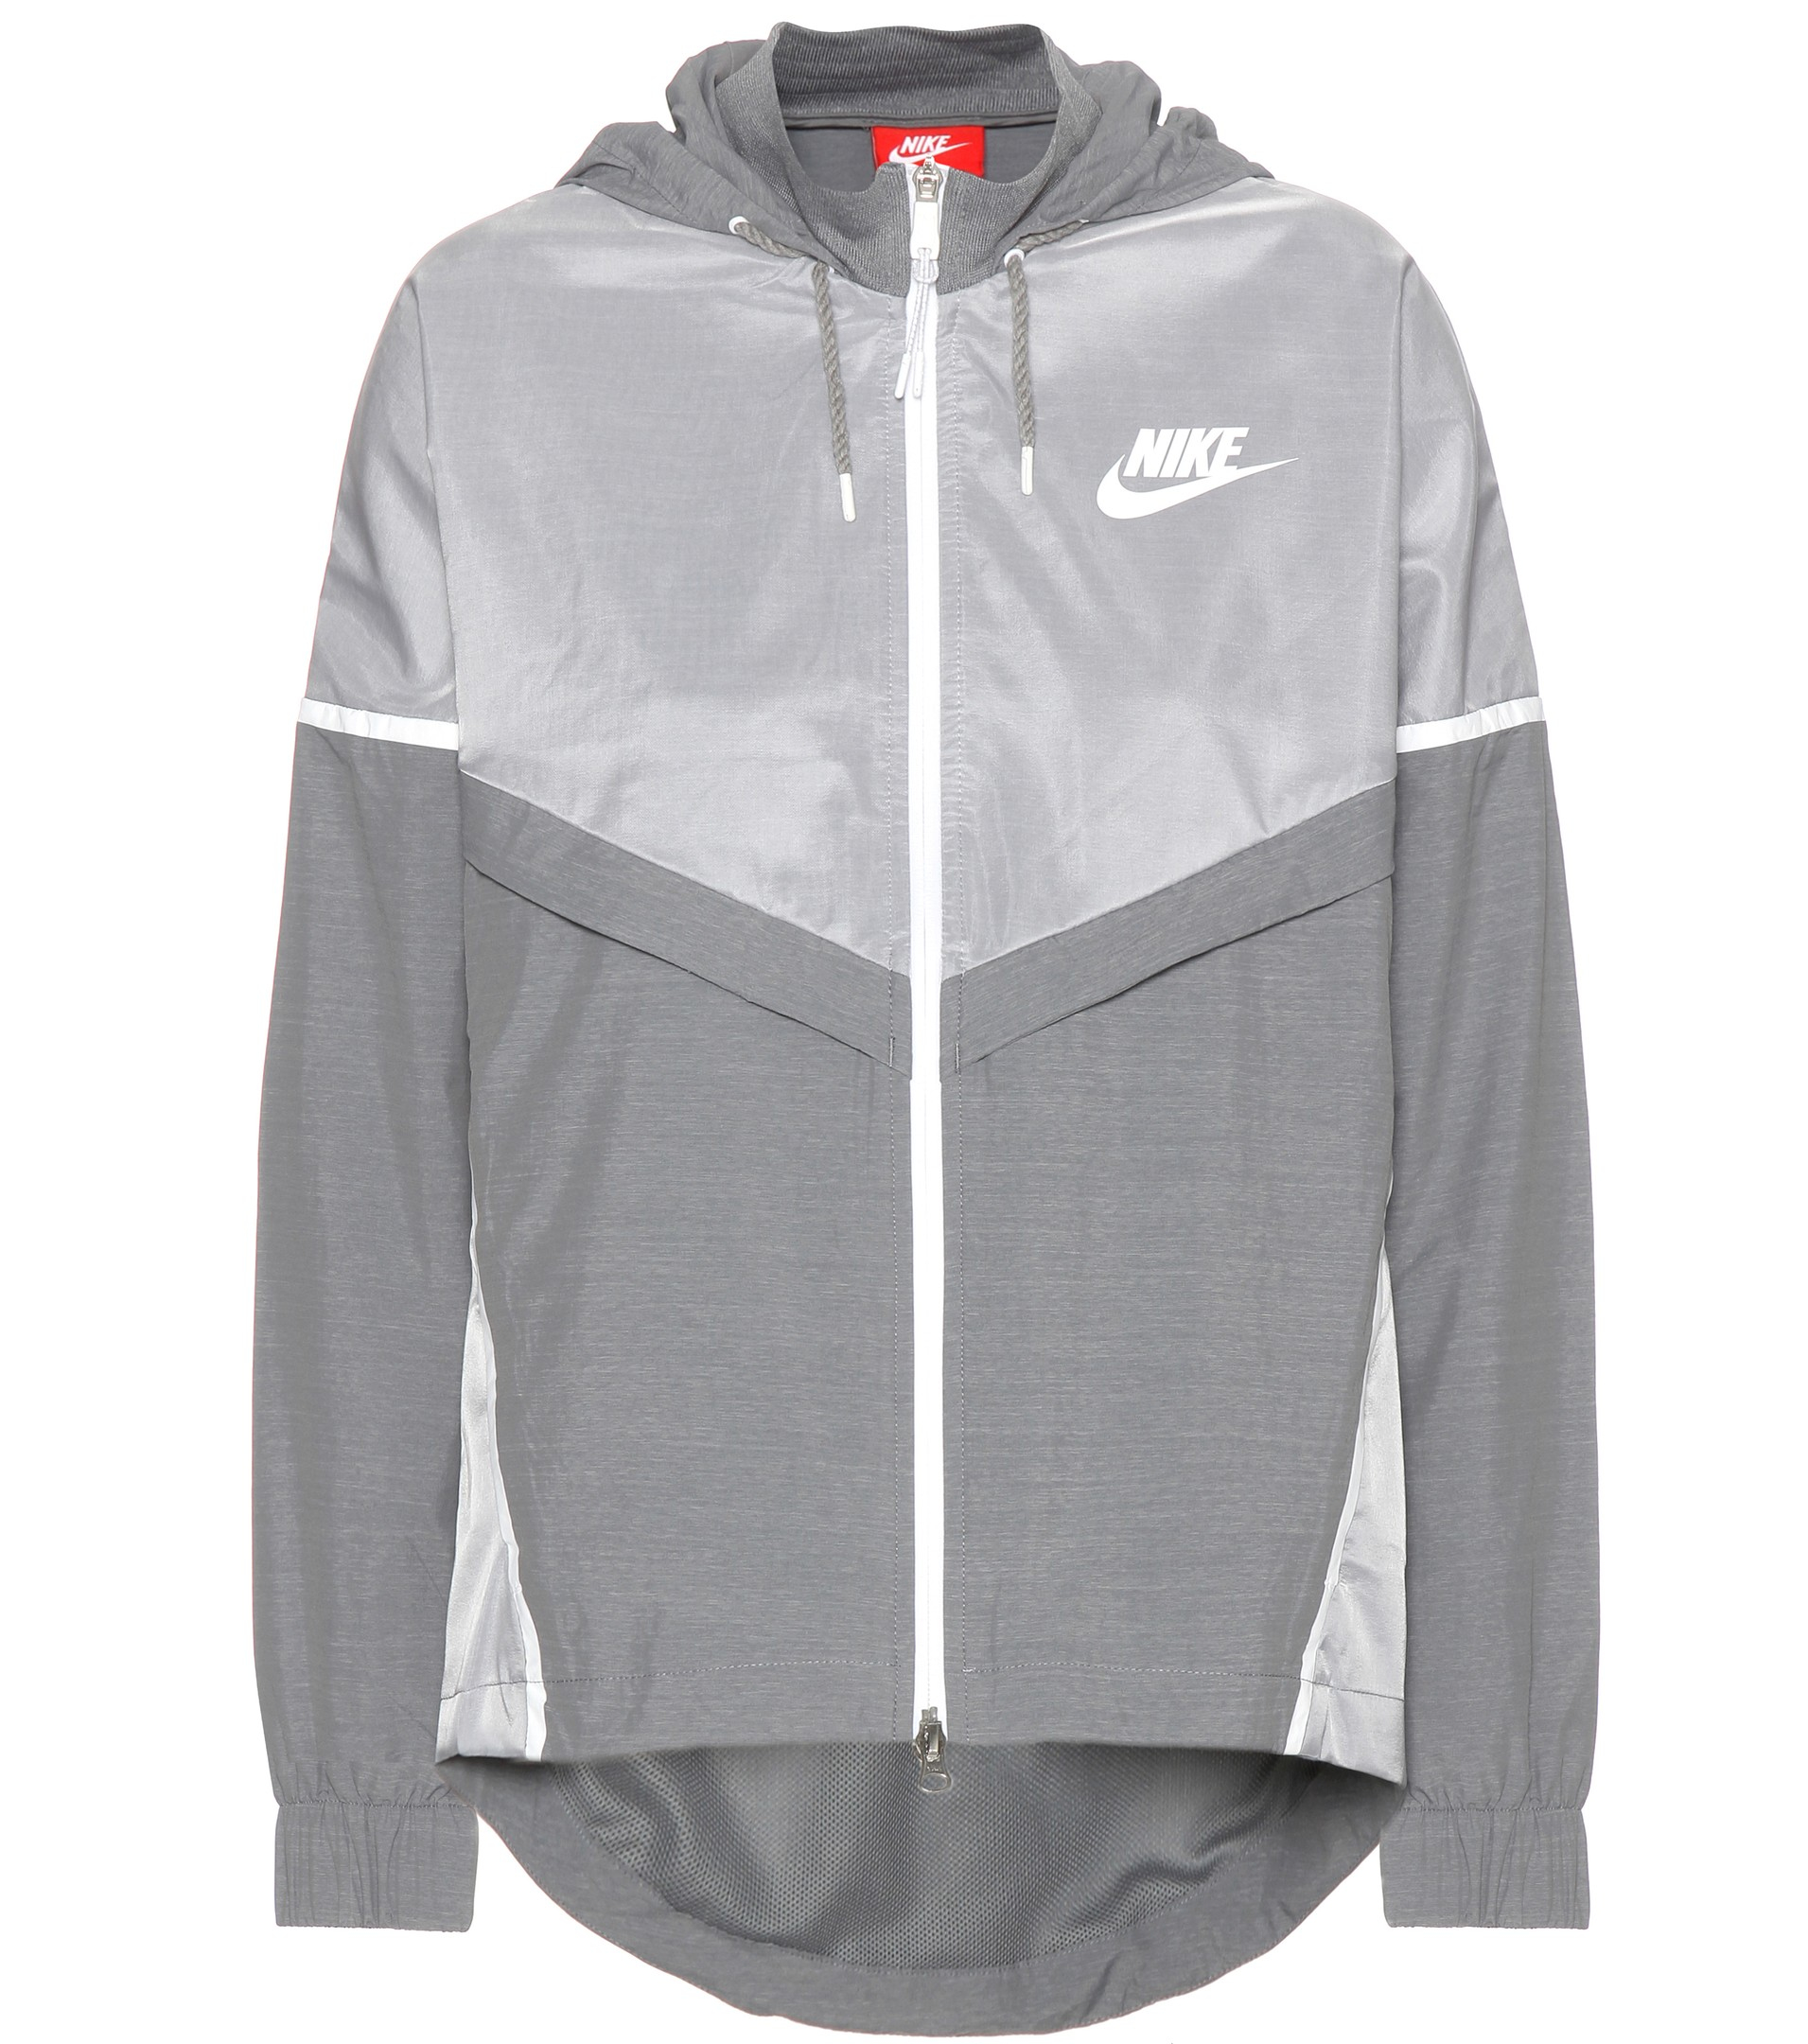 Nike jacket grey and white - Gallery